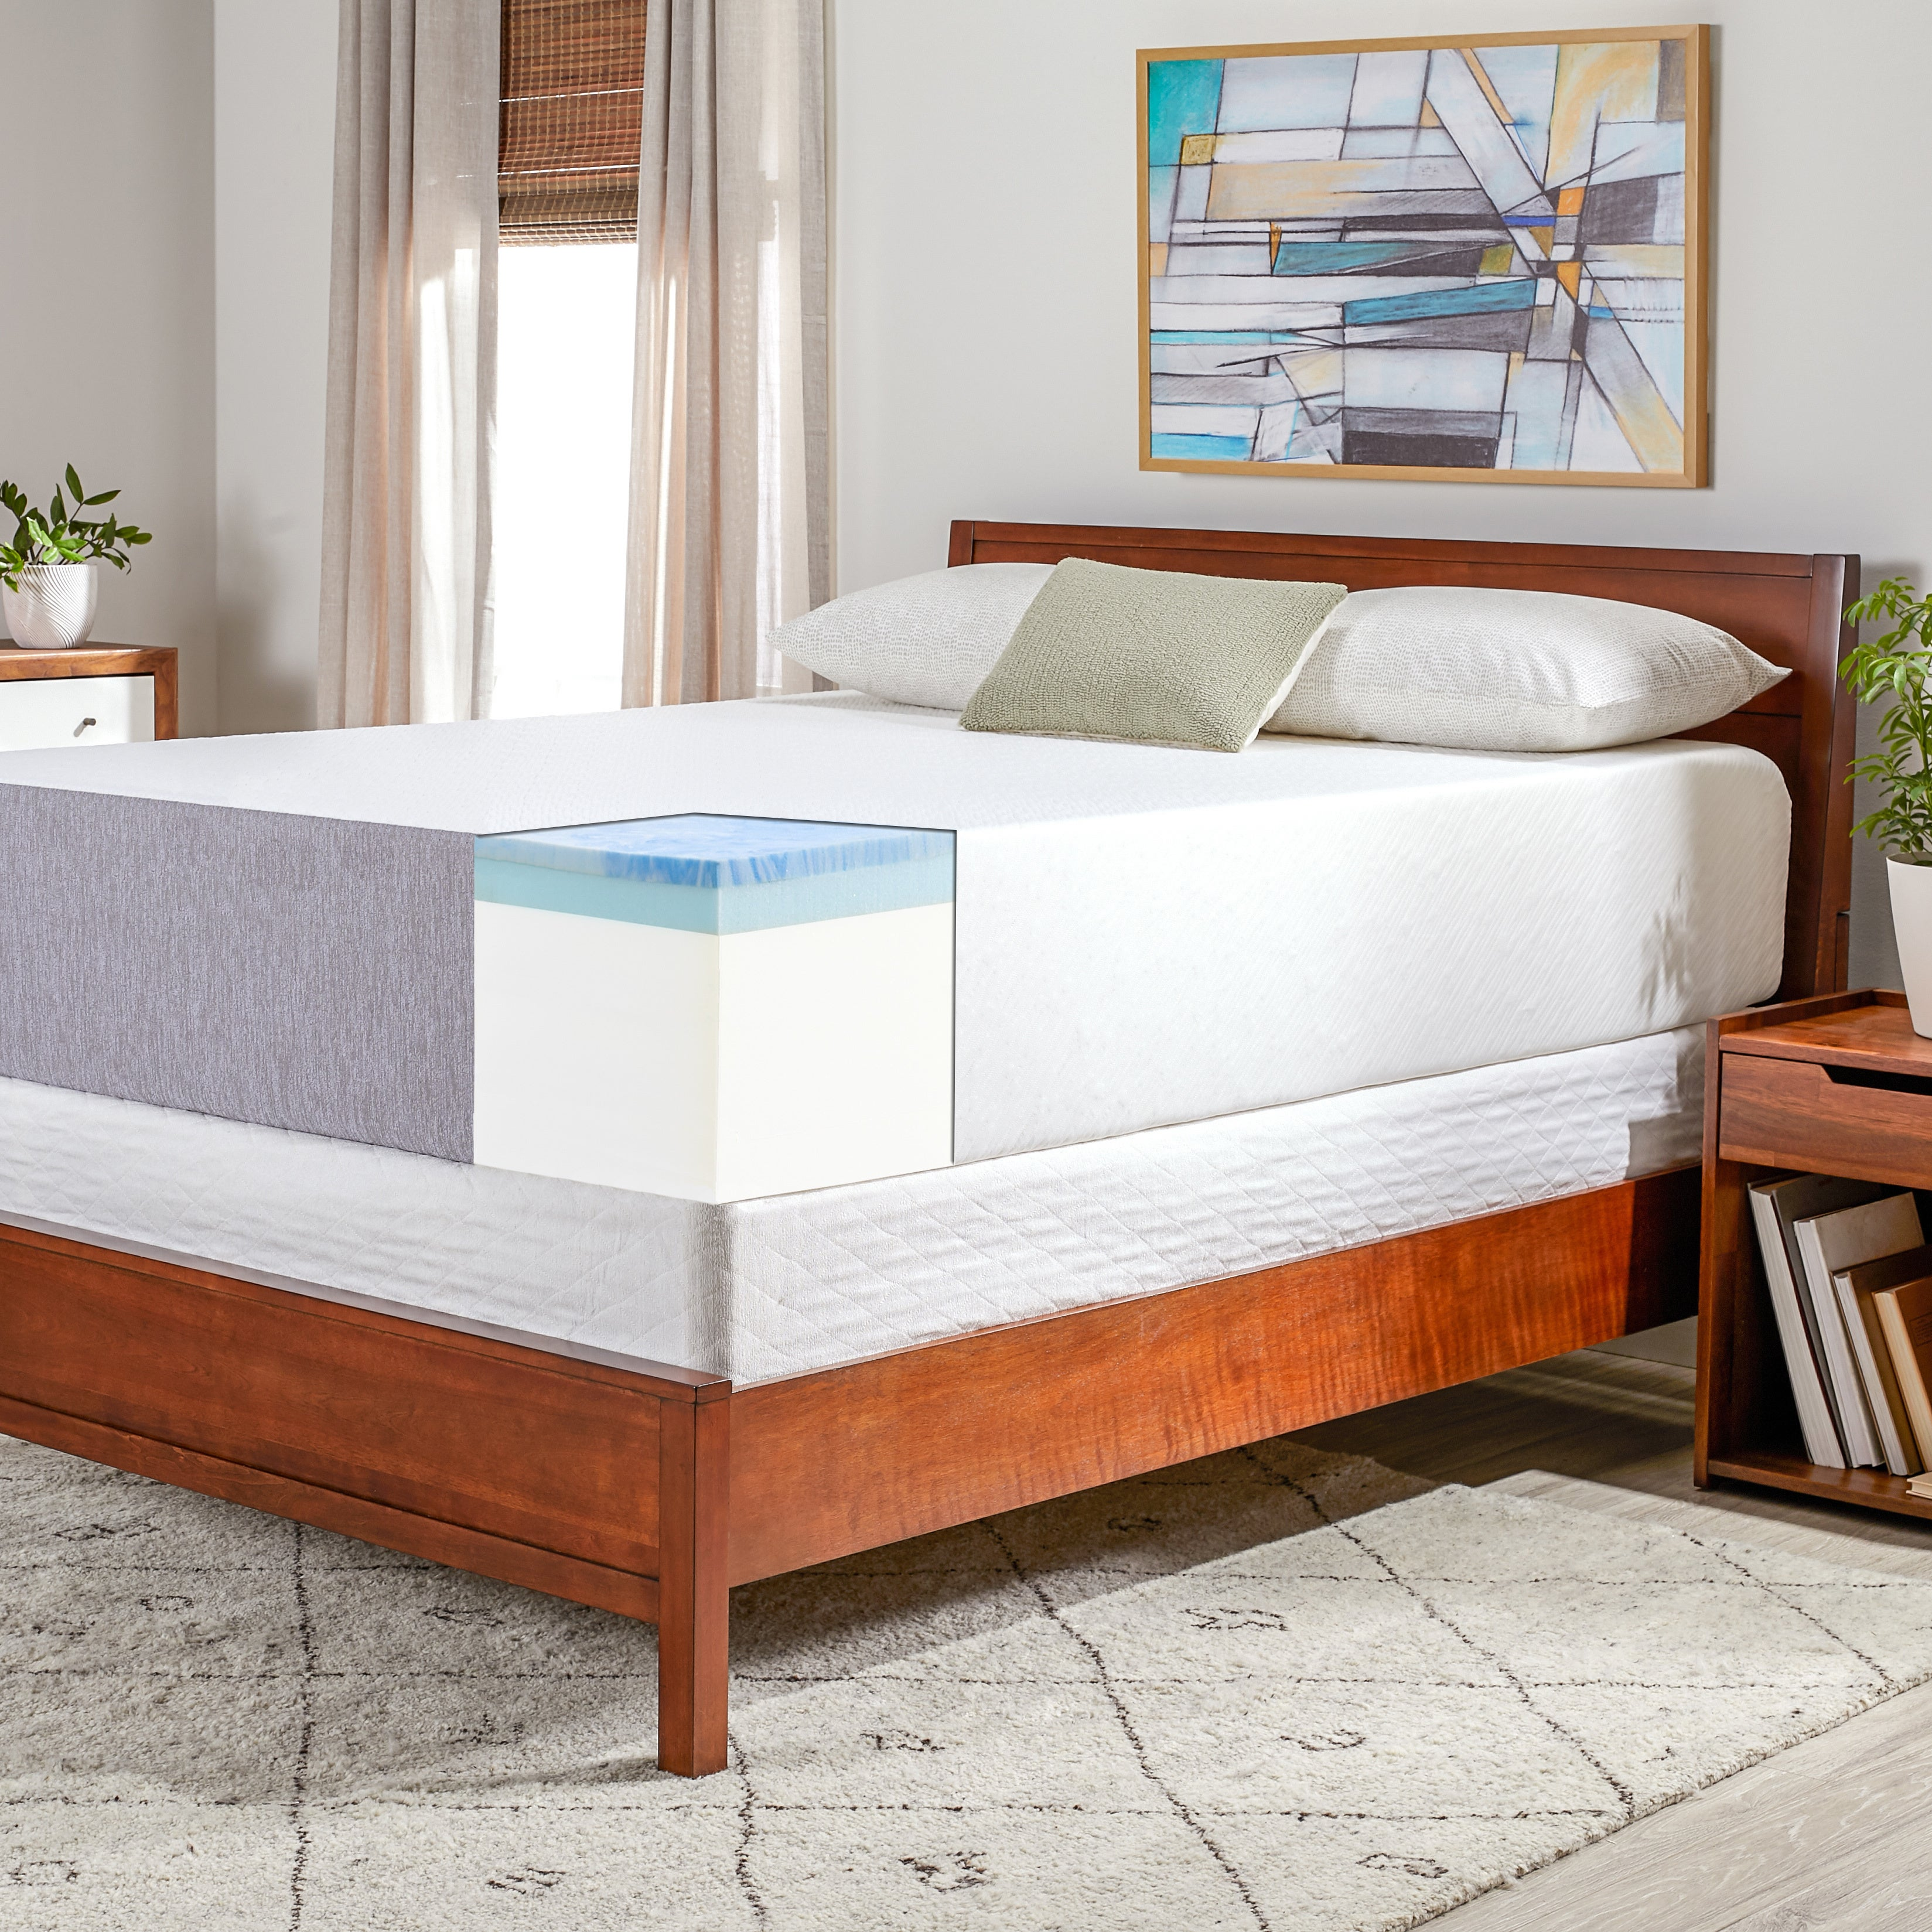 hot sale online 86aab 24ca4 OSleep 14-inch Medium Firm Gel Memory Foam Mattress and Foundation Set